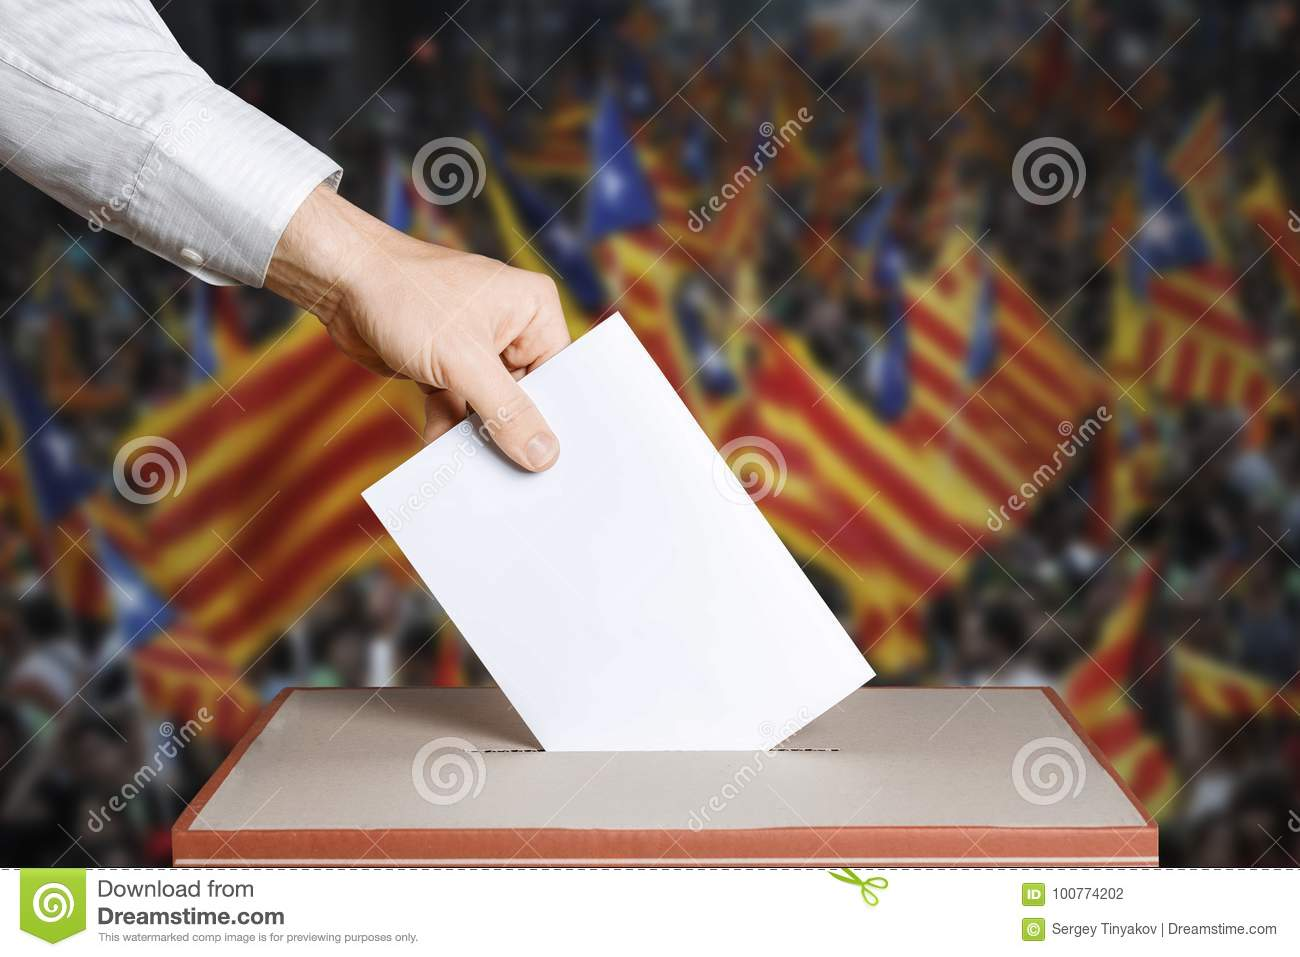 Voter Holds Envelope In Hand Above Vote Ballot. Catalonia Flags background. Democracy Concept